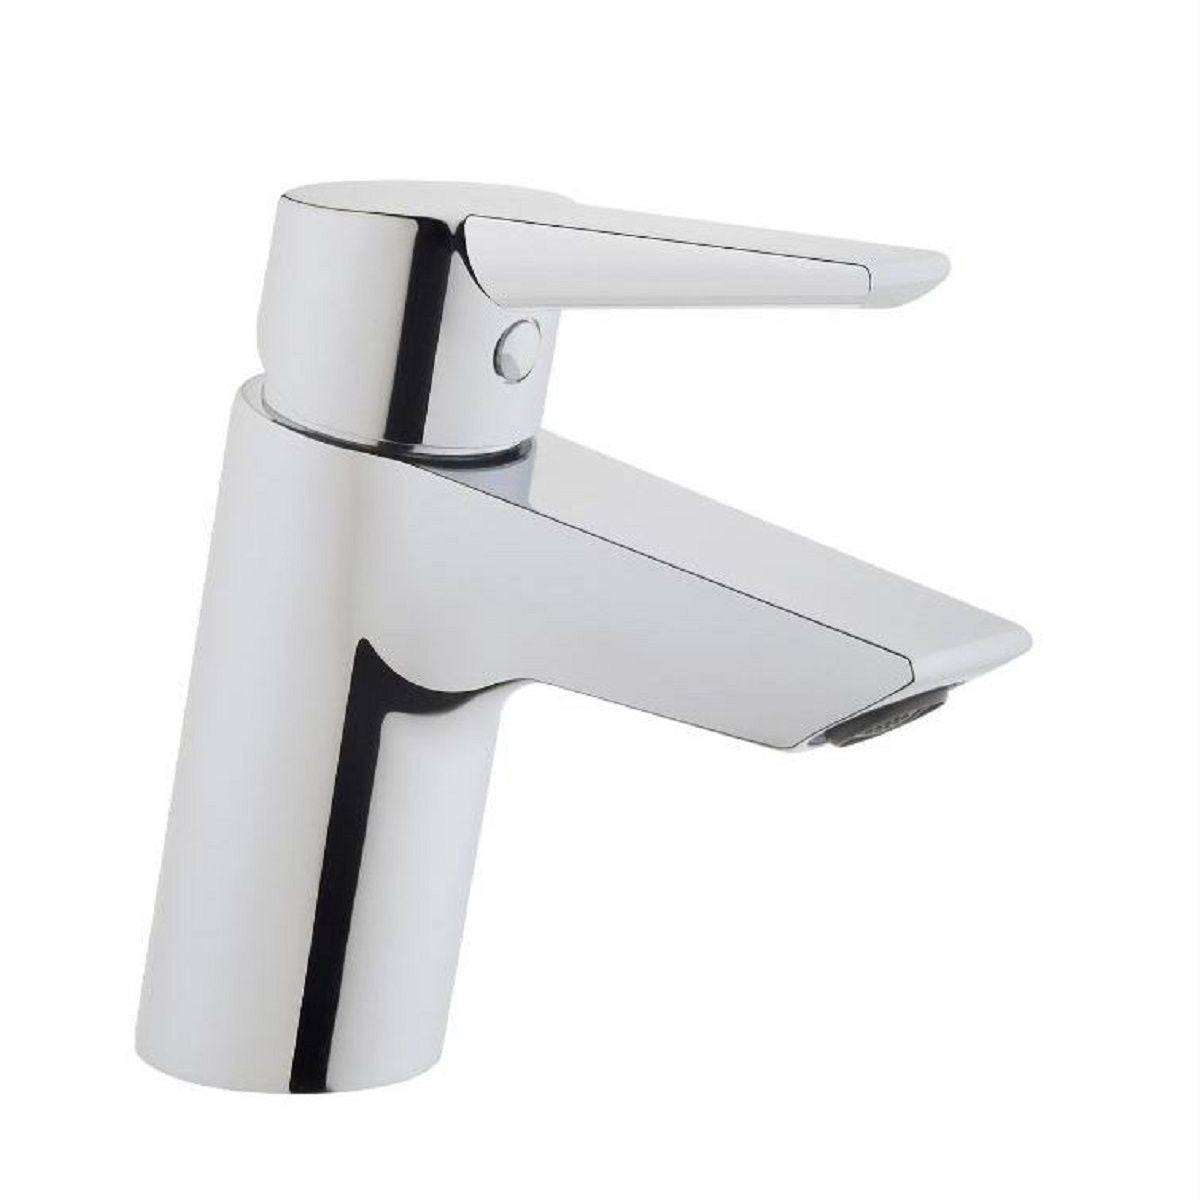 Solid S Basin Mixer - blueskybathrooms